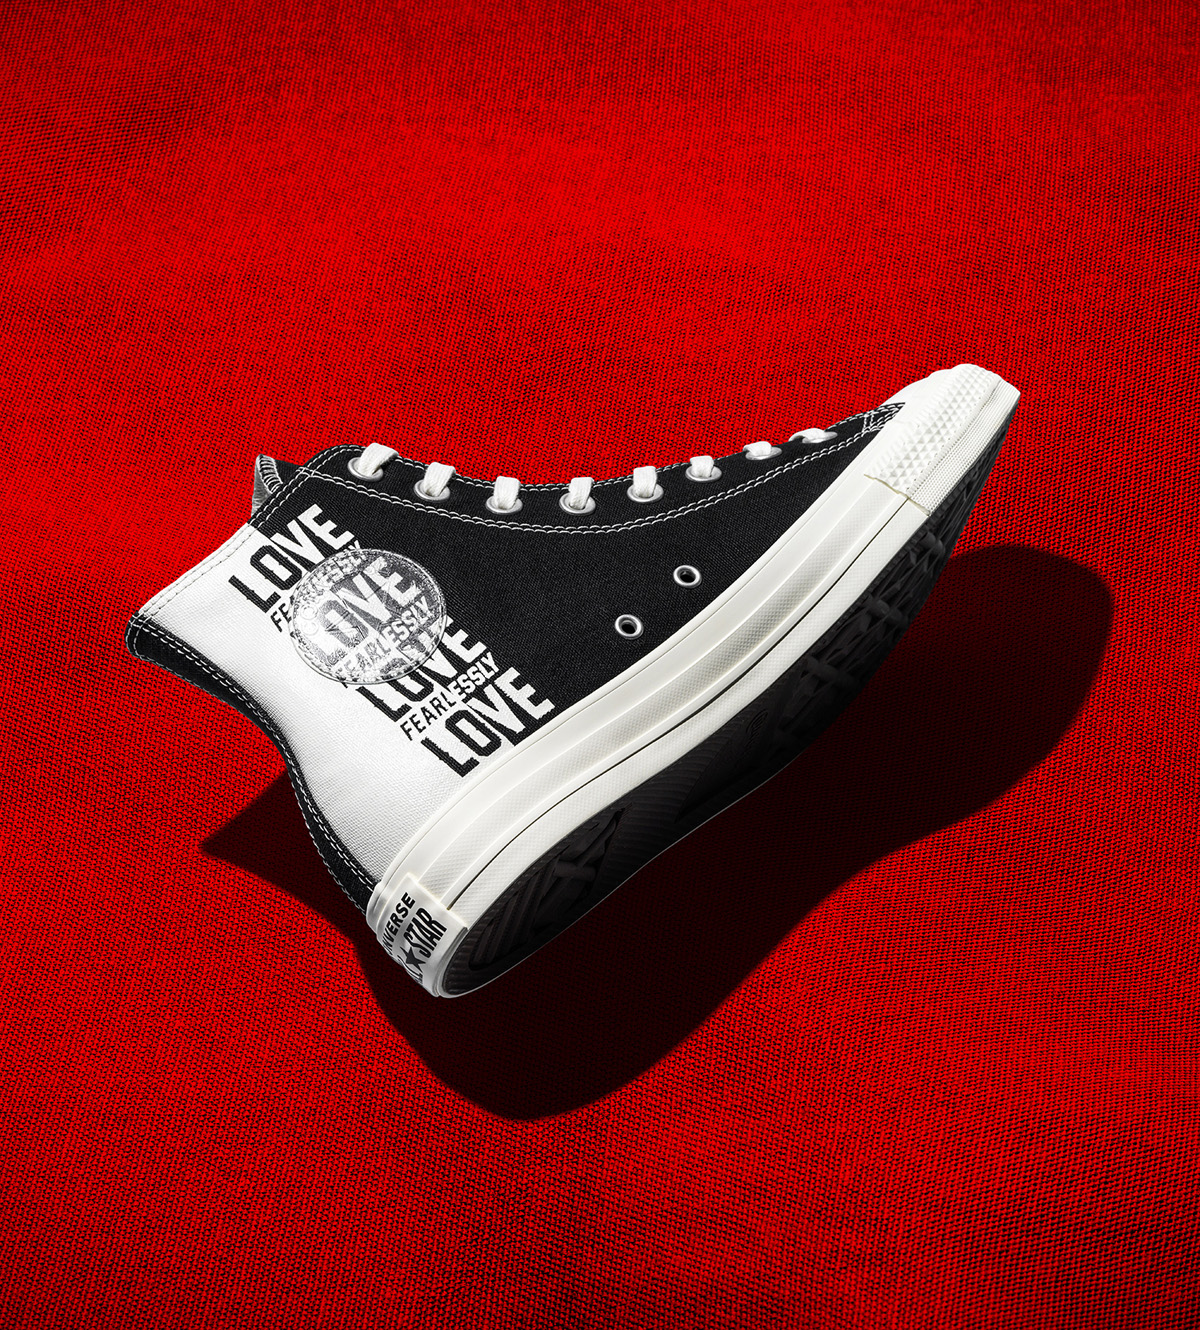 converse love fearlessly chi tiết trong suốt trắng đen